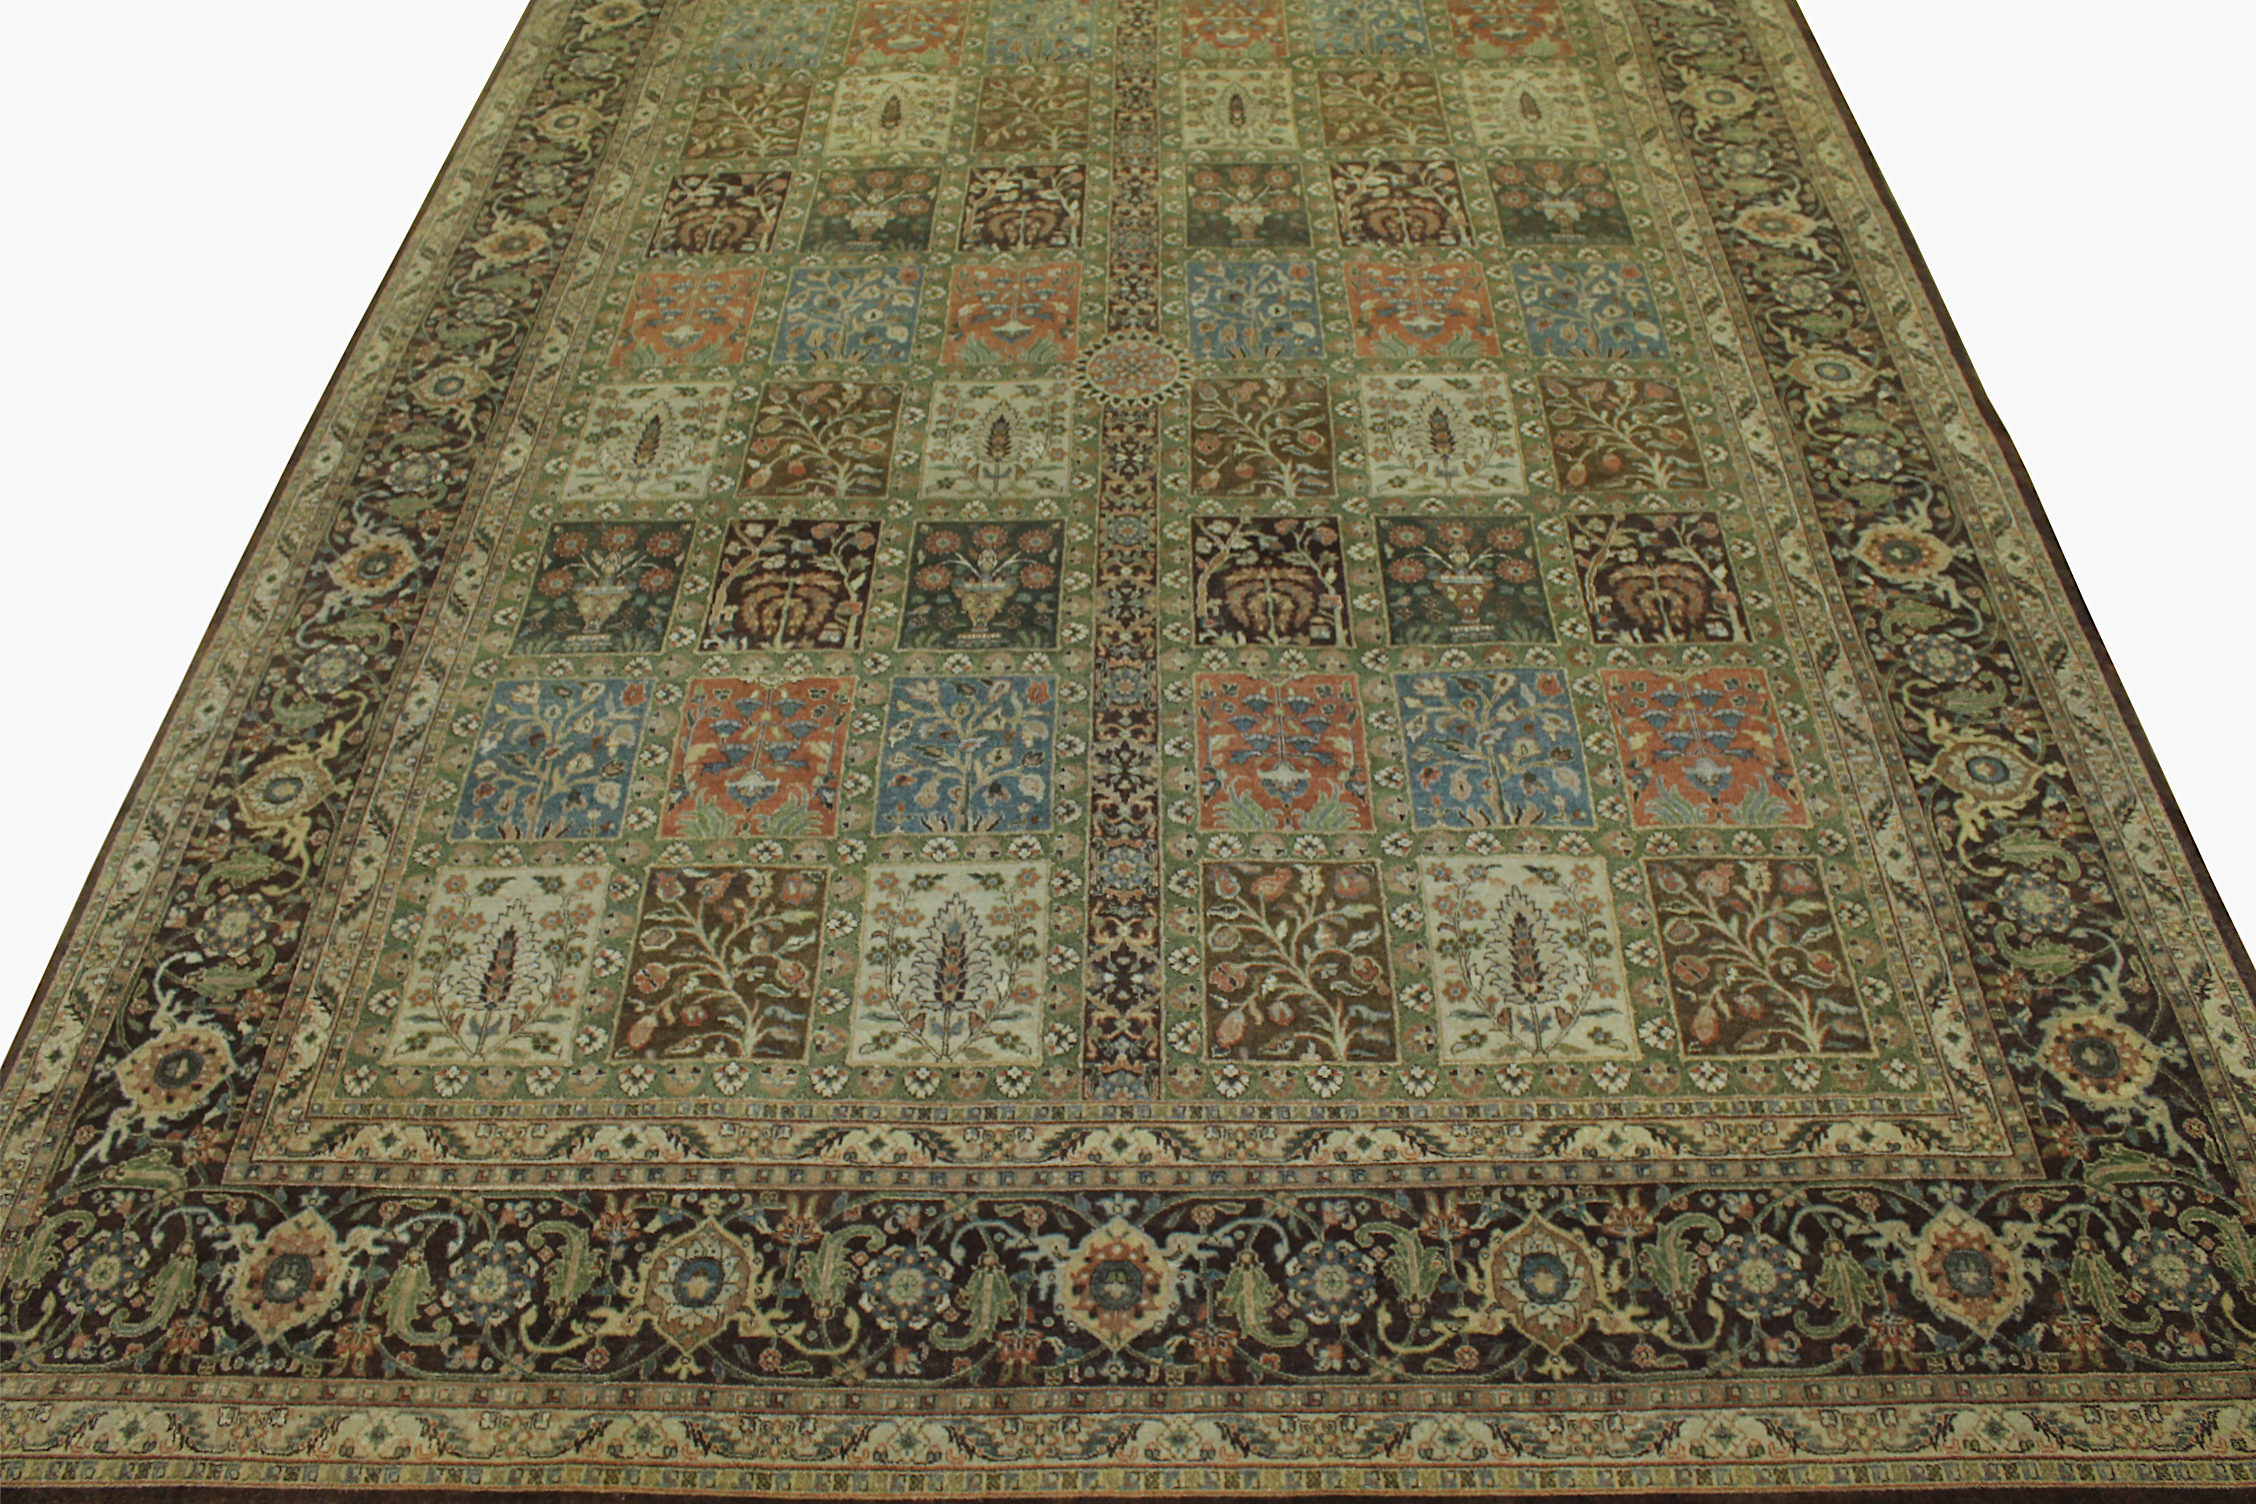 9x12 Traditional Hand Knotted Wool Area Rug - MR11171